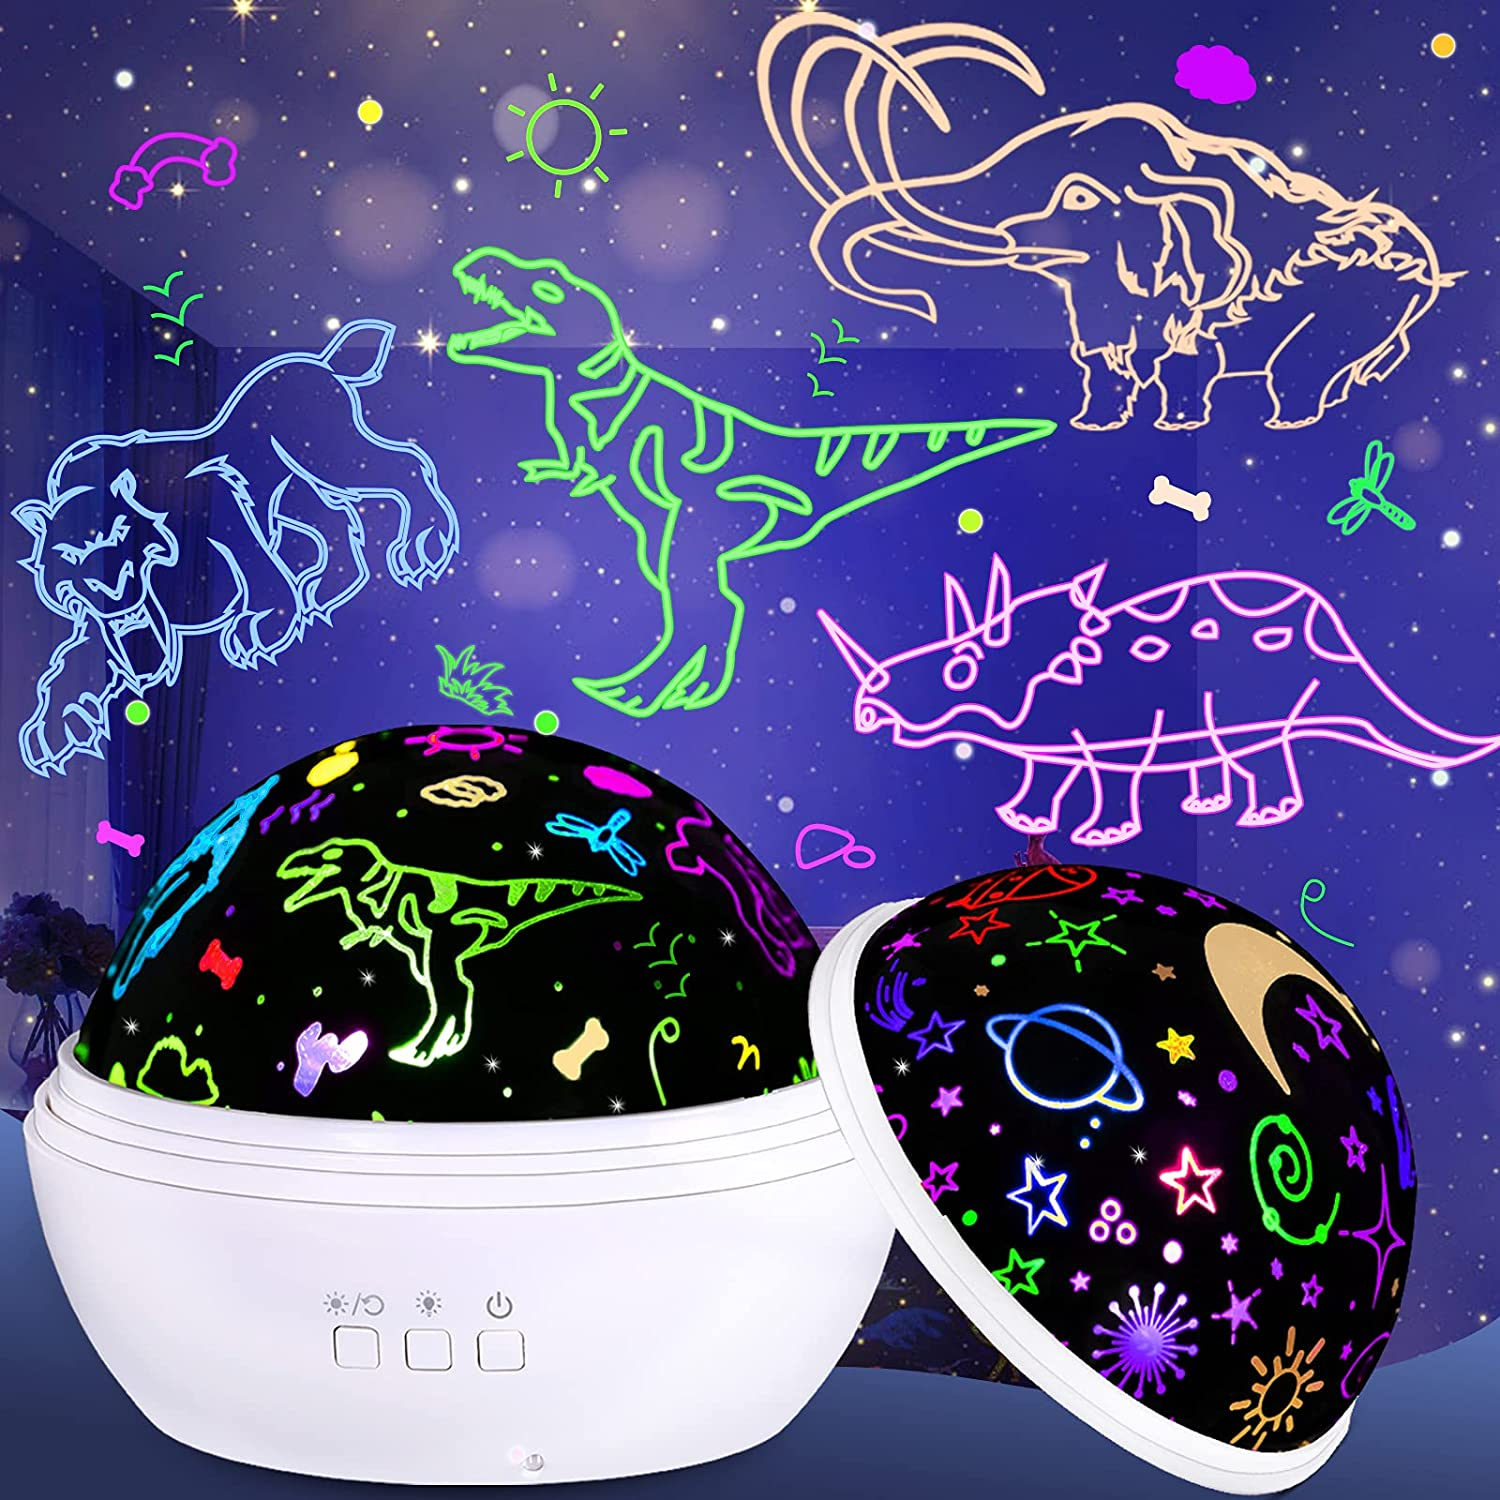 Dinosaur Toys Night Light Projector for Kids 3-5 Year Old Star Projector 360° Rotation with 9 Colors Mode Perfect Dinosaur Room Decor Birthday Gifts for 2-10 Year Old Boys and Girls